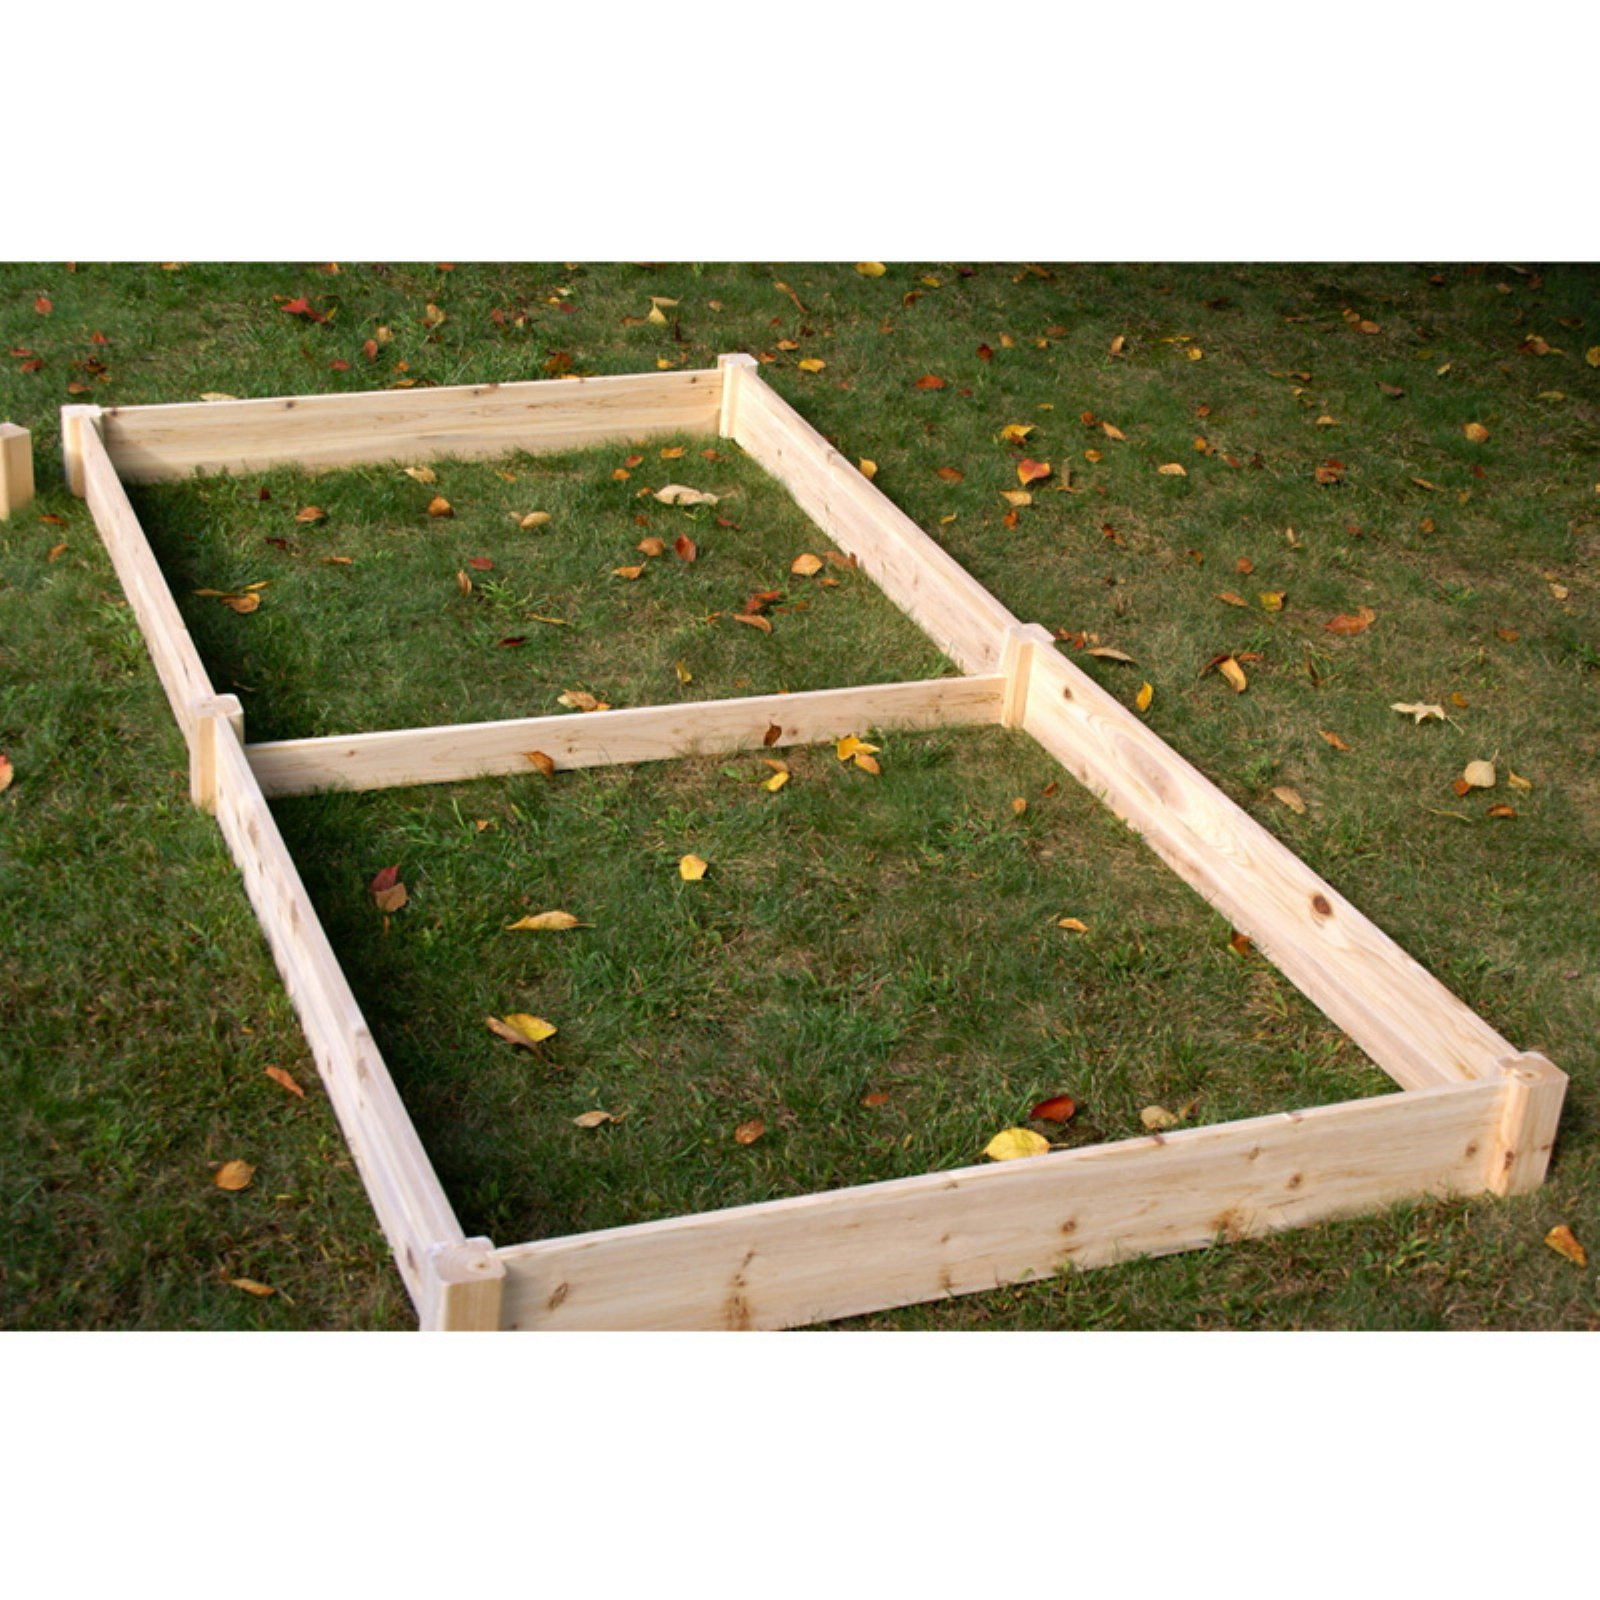 Eden Raised Garden Bed - 8 x 4 ft.